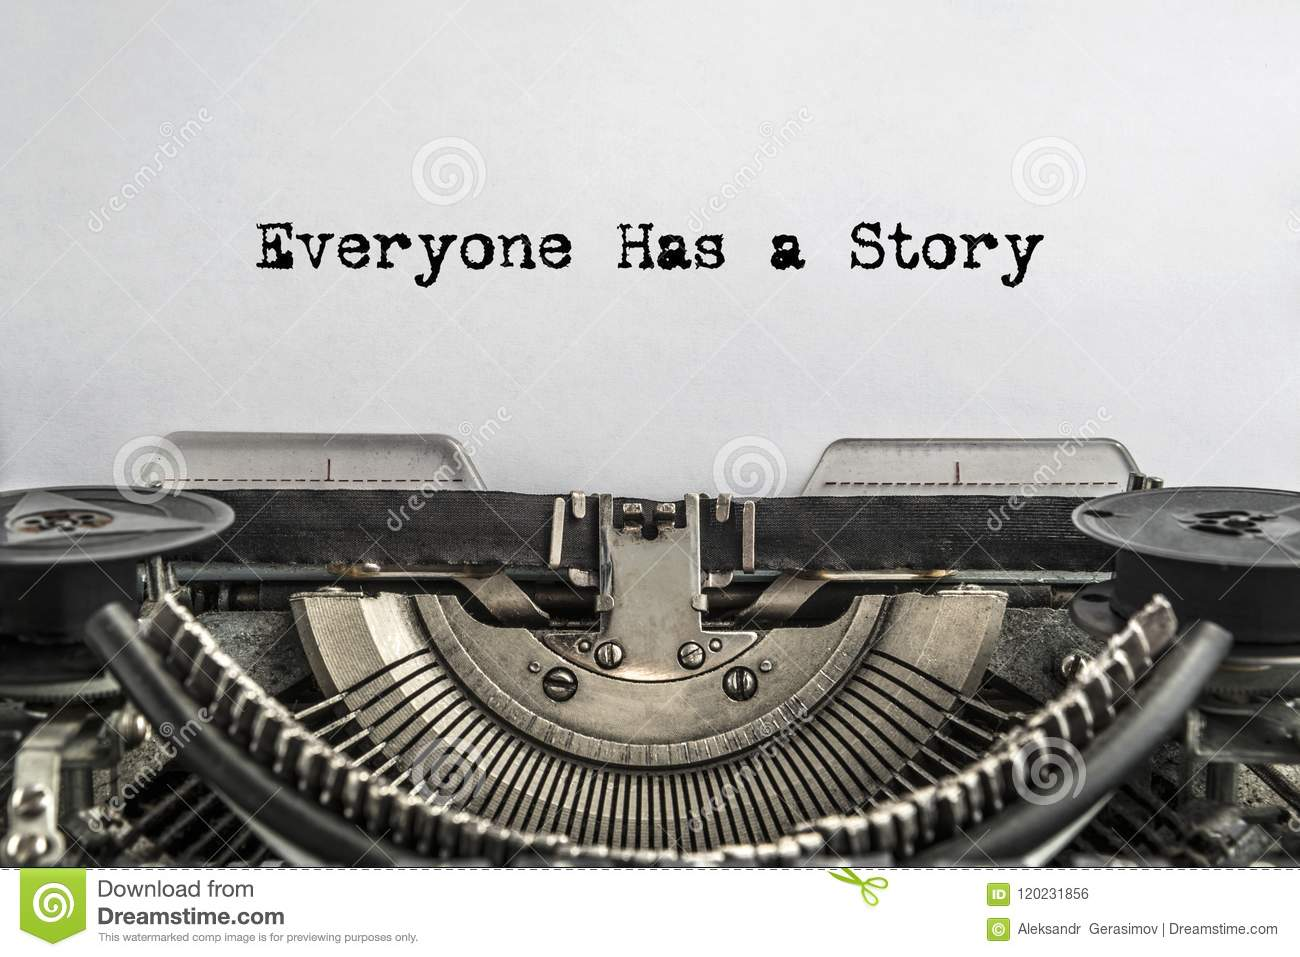 Everyone has a Story, typed words on a vintage typewriter.